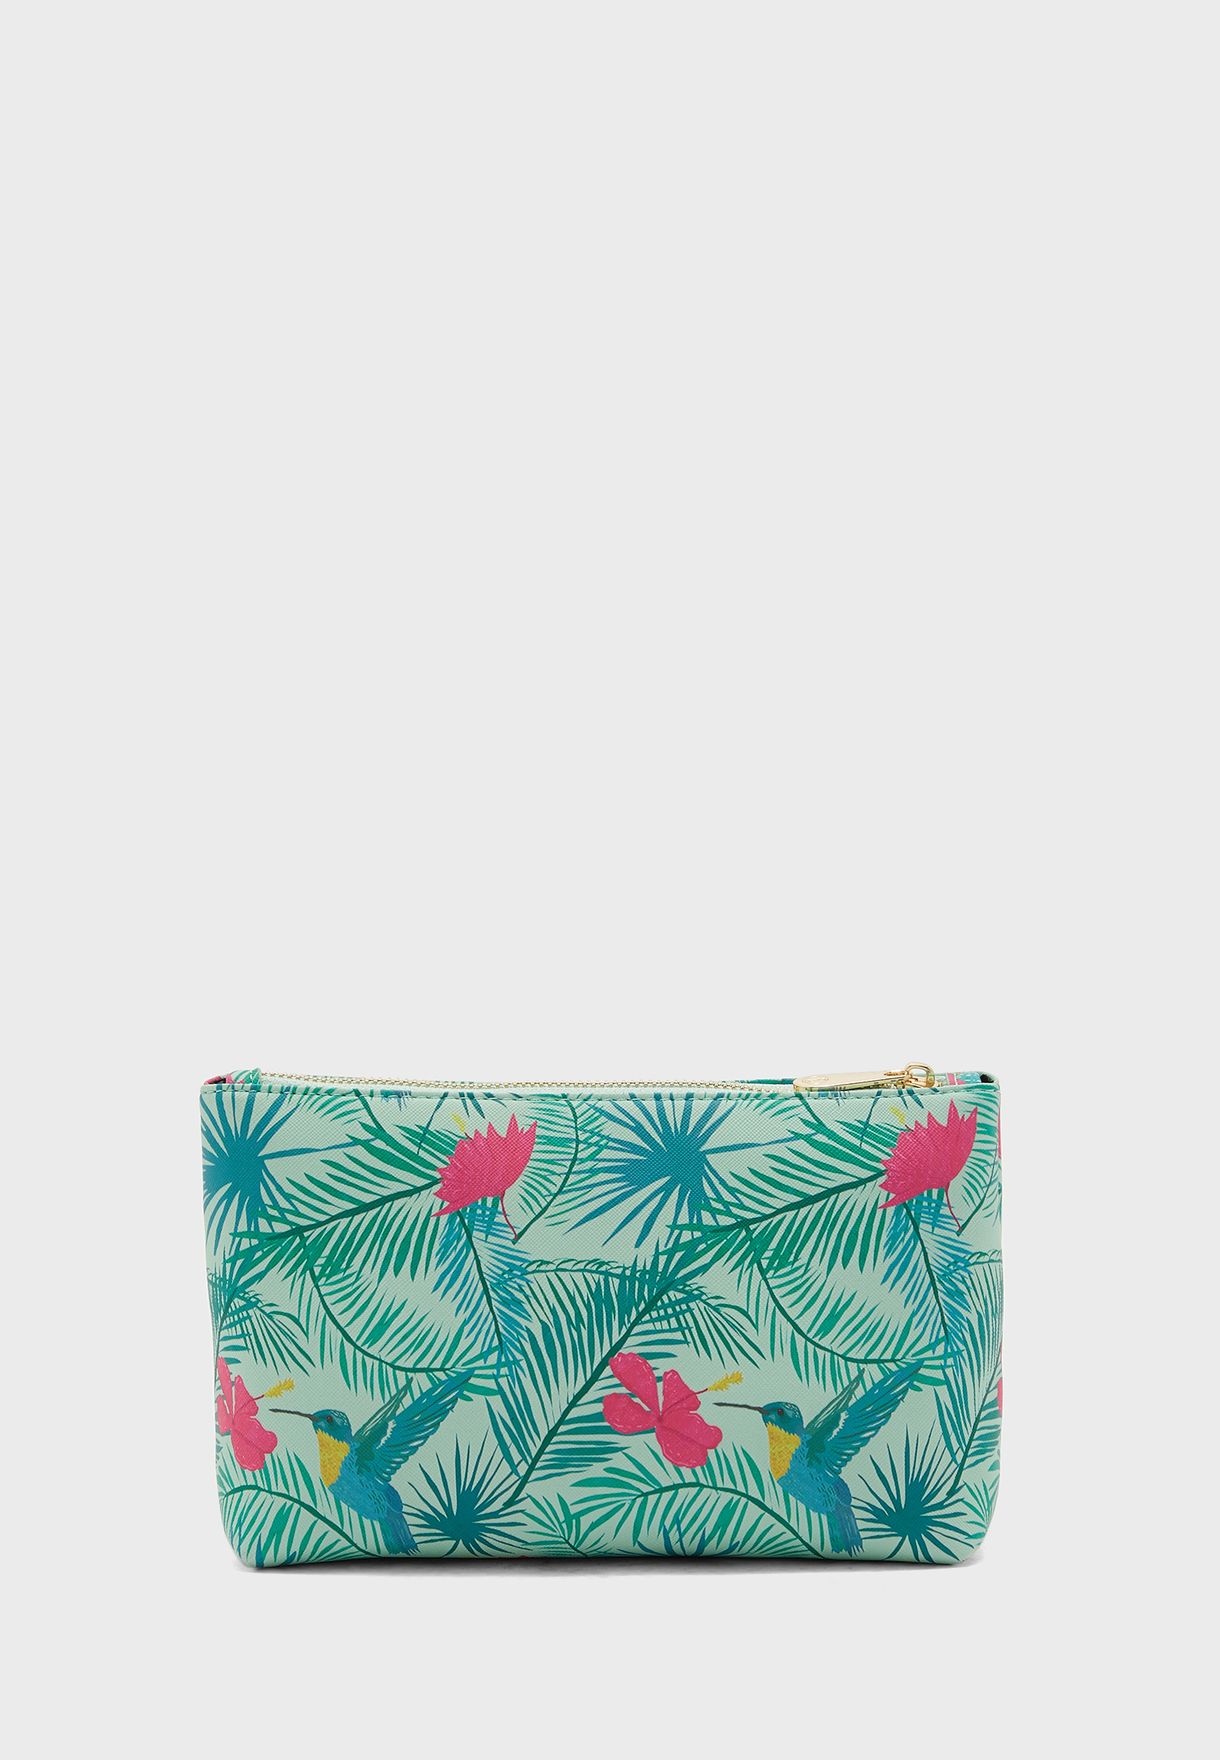 Hummingbird Printed Cosmetic Bag